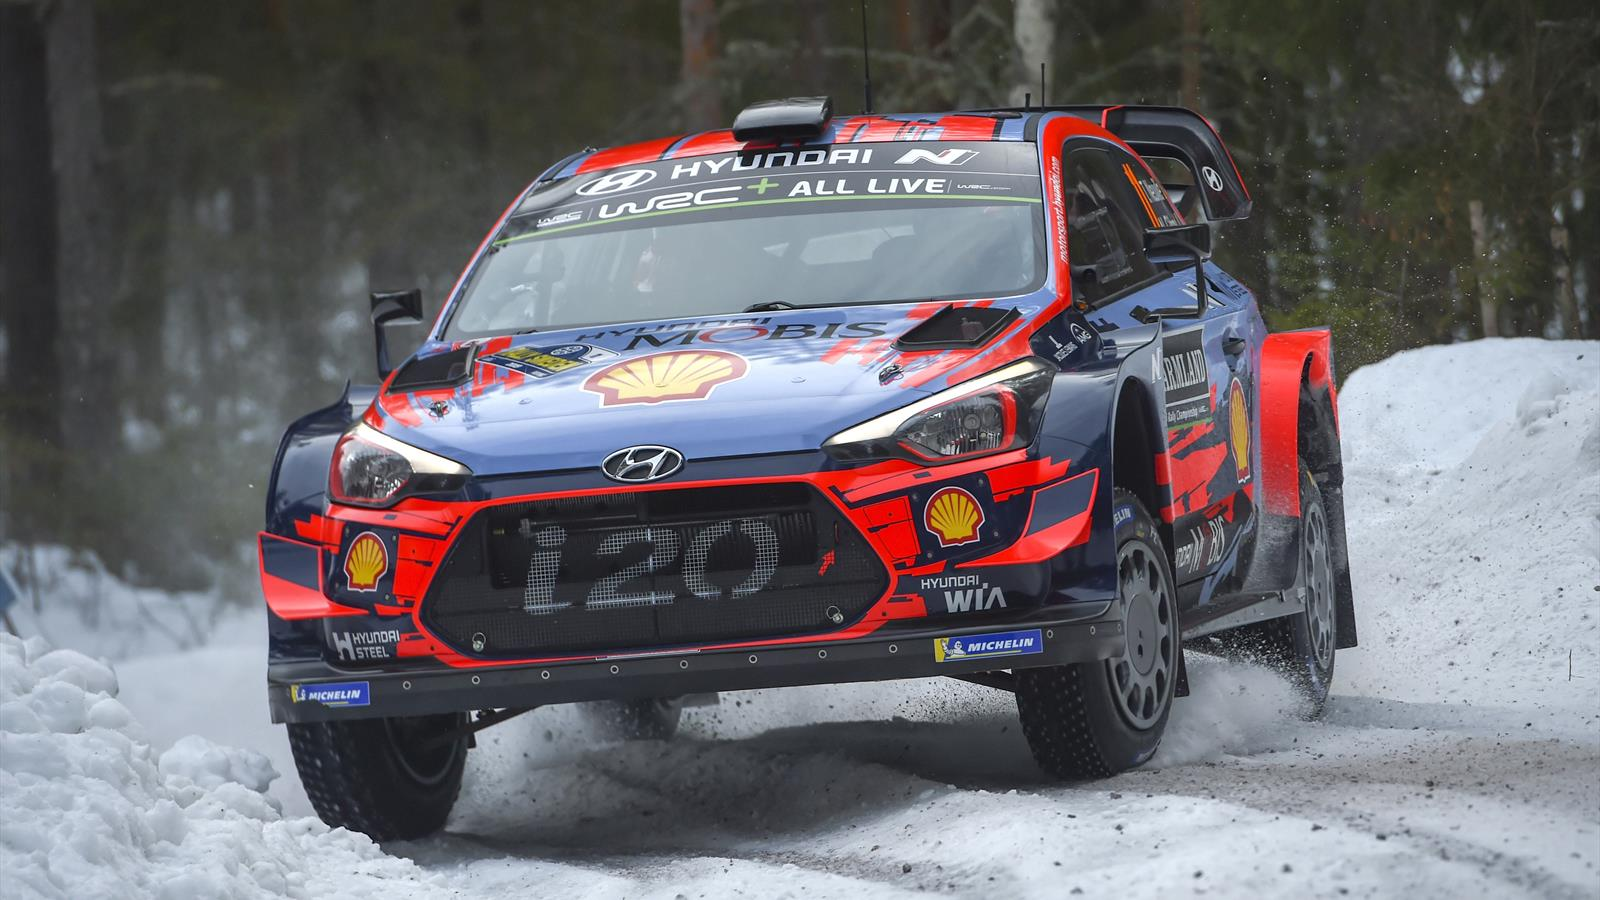 rallye de su de neuville remporte la premi re sp ciale devant ogier loeb loin derri re. Black Bedroom Furniture Sets. Home Design Ideas